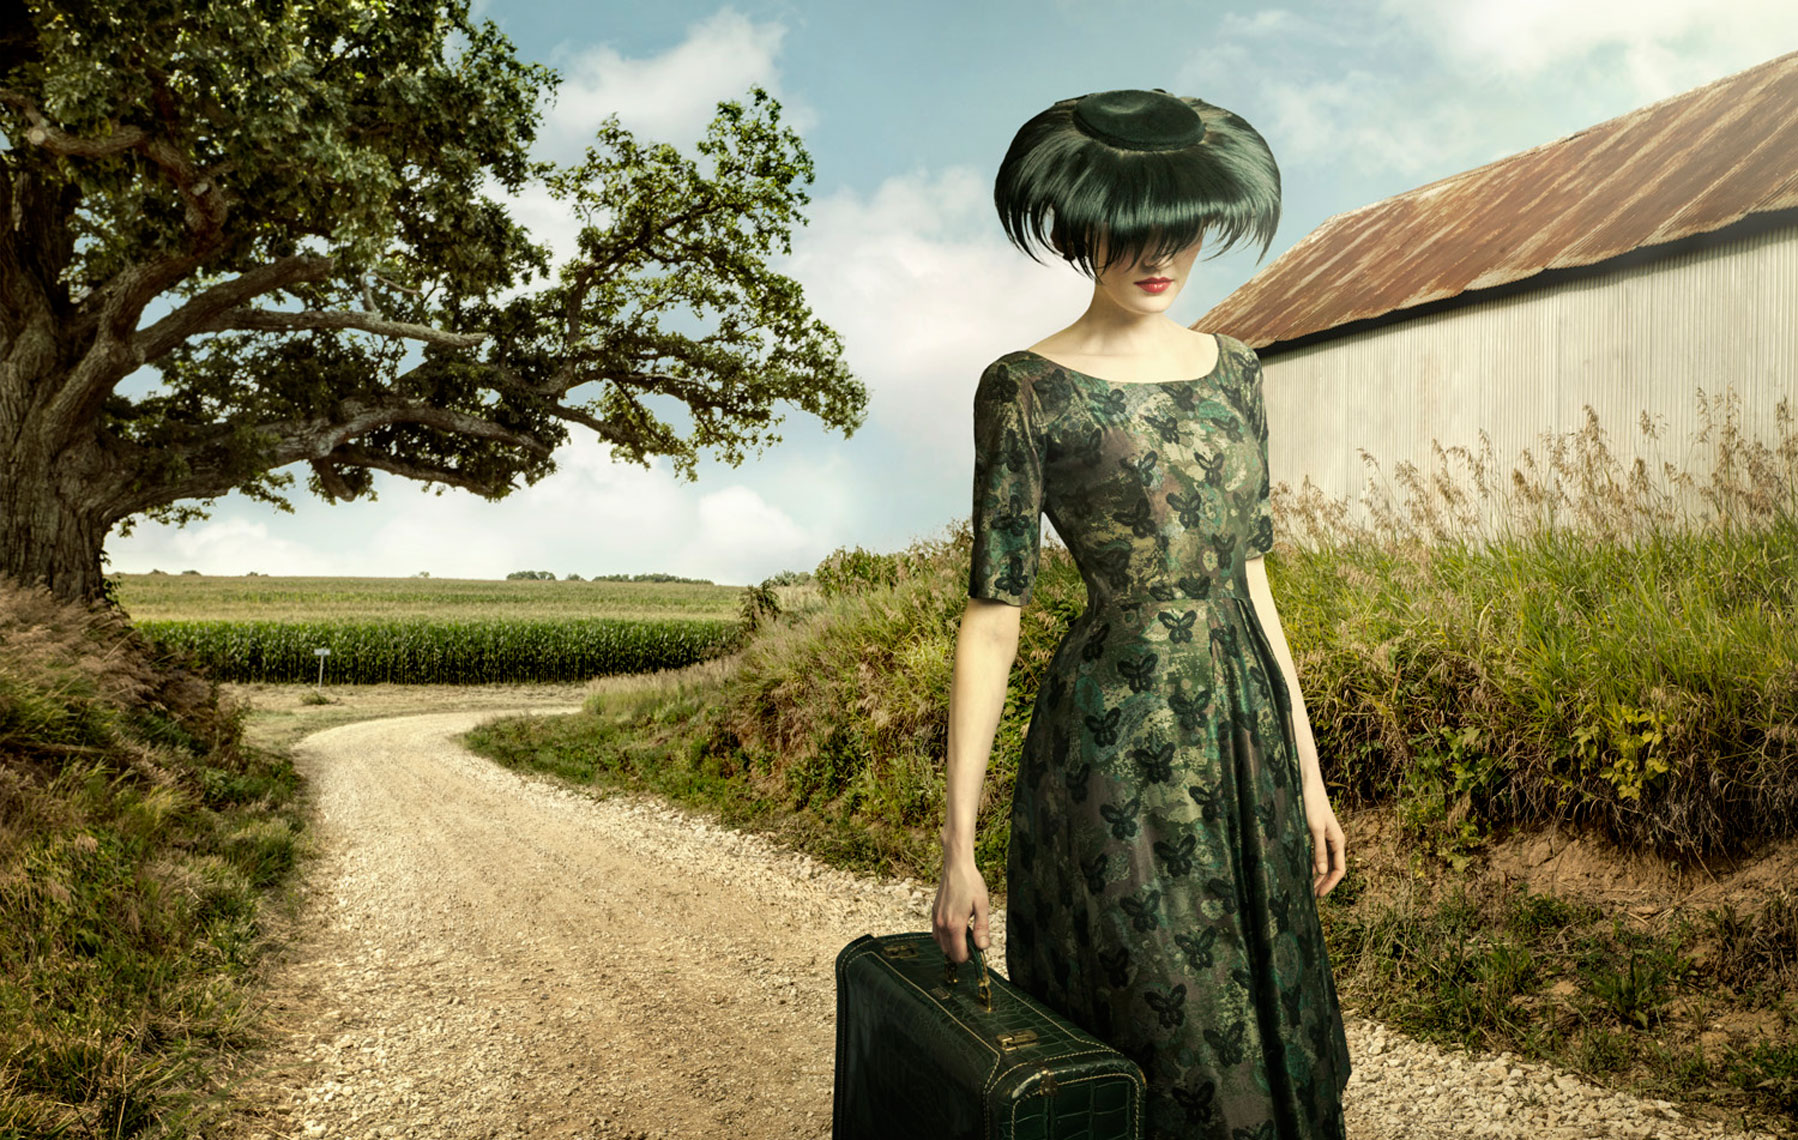 The Suitcase Girl Composite